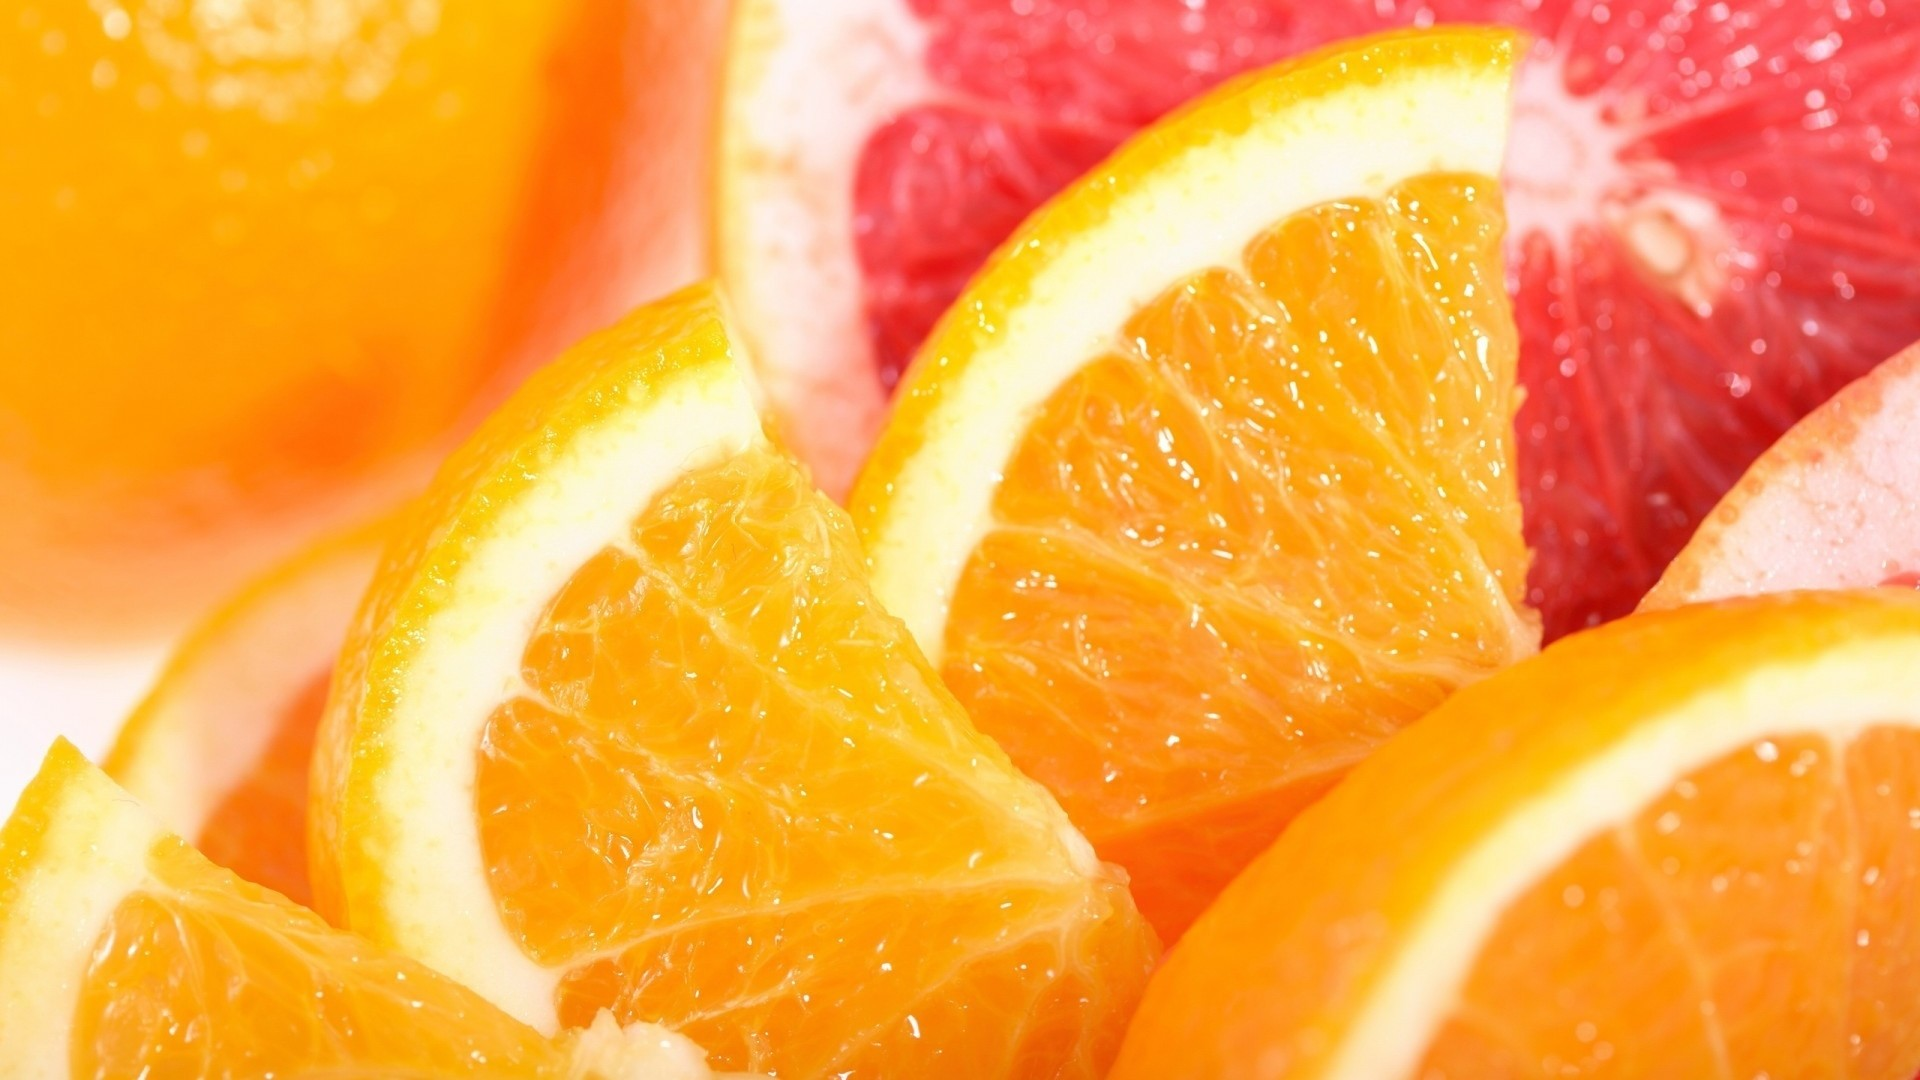 Wallpaper orange, fruit, cutting, grapefruit